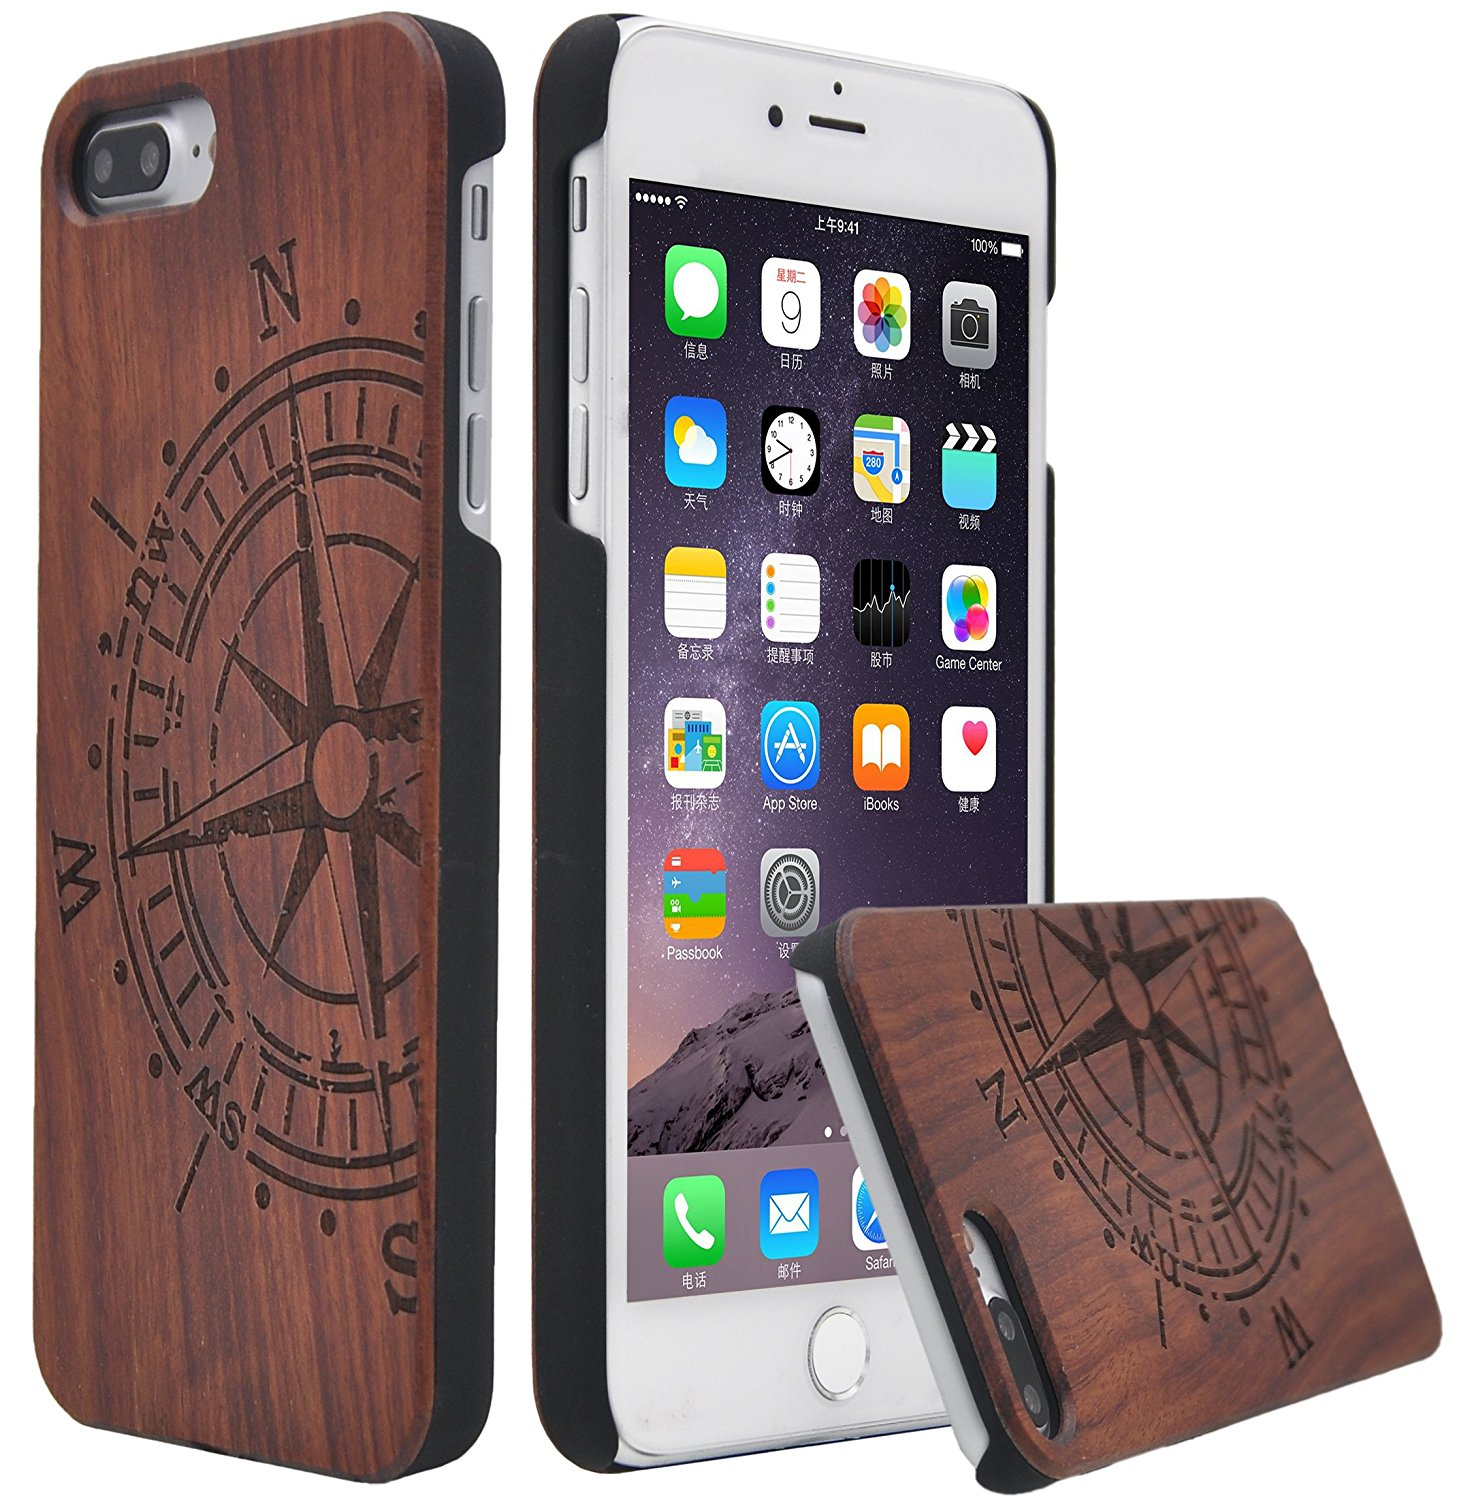 reputable site 27505 f6d88 Beautiful, slim rosewood iPhone 7 plus case for $8 / Boing Boing